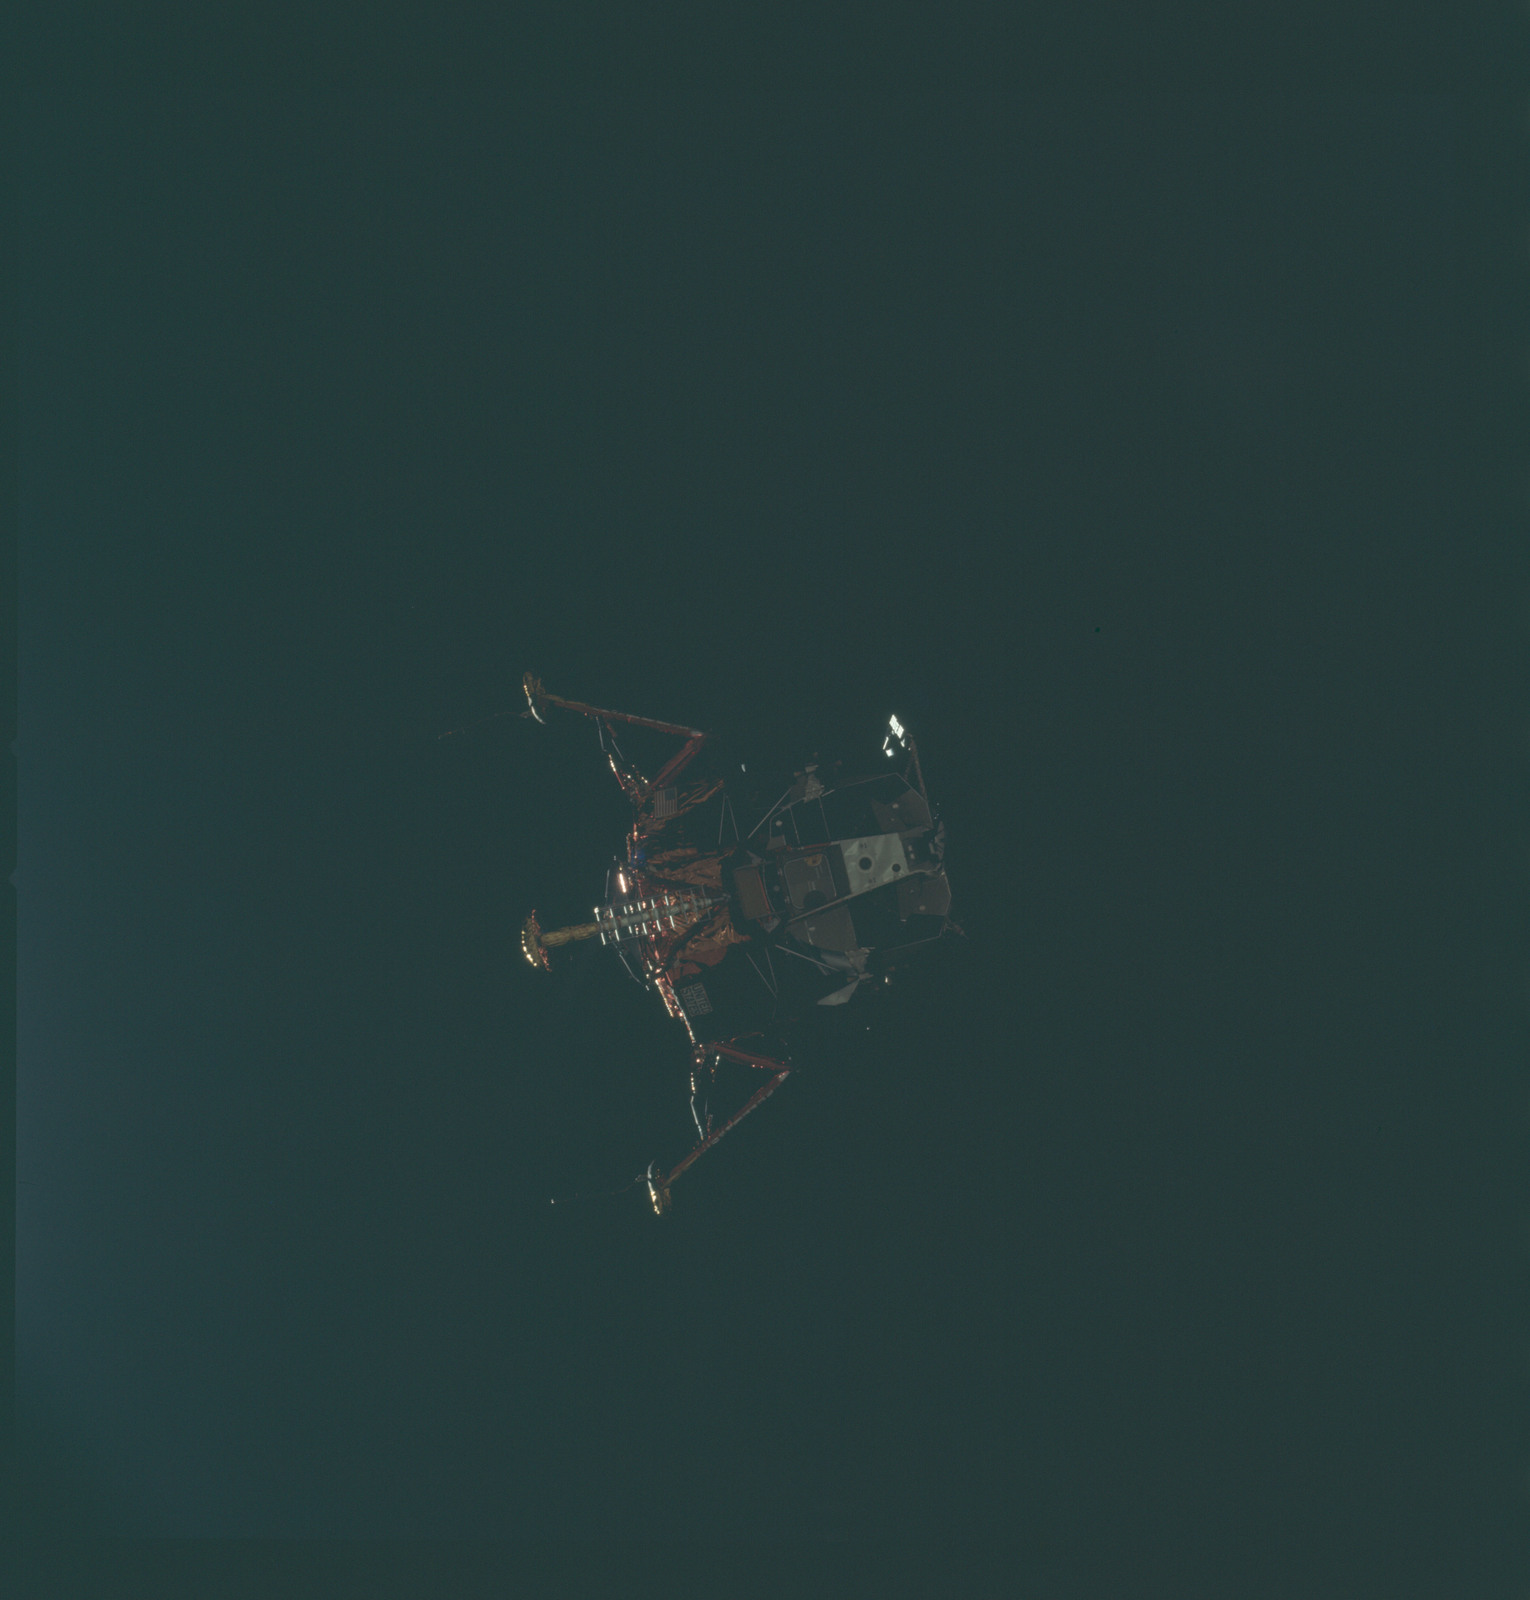 AS11-44-6589 - Apollo 11 - Apollo 11 Mission image - View of Lunar Module separation from the Command Module